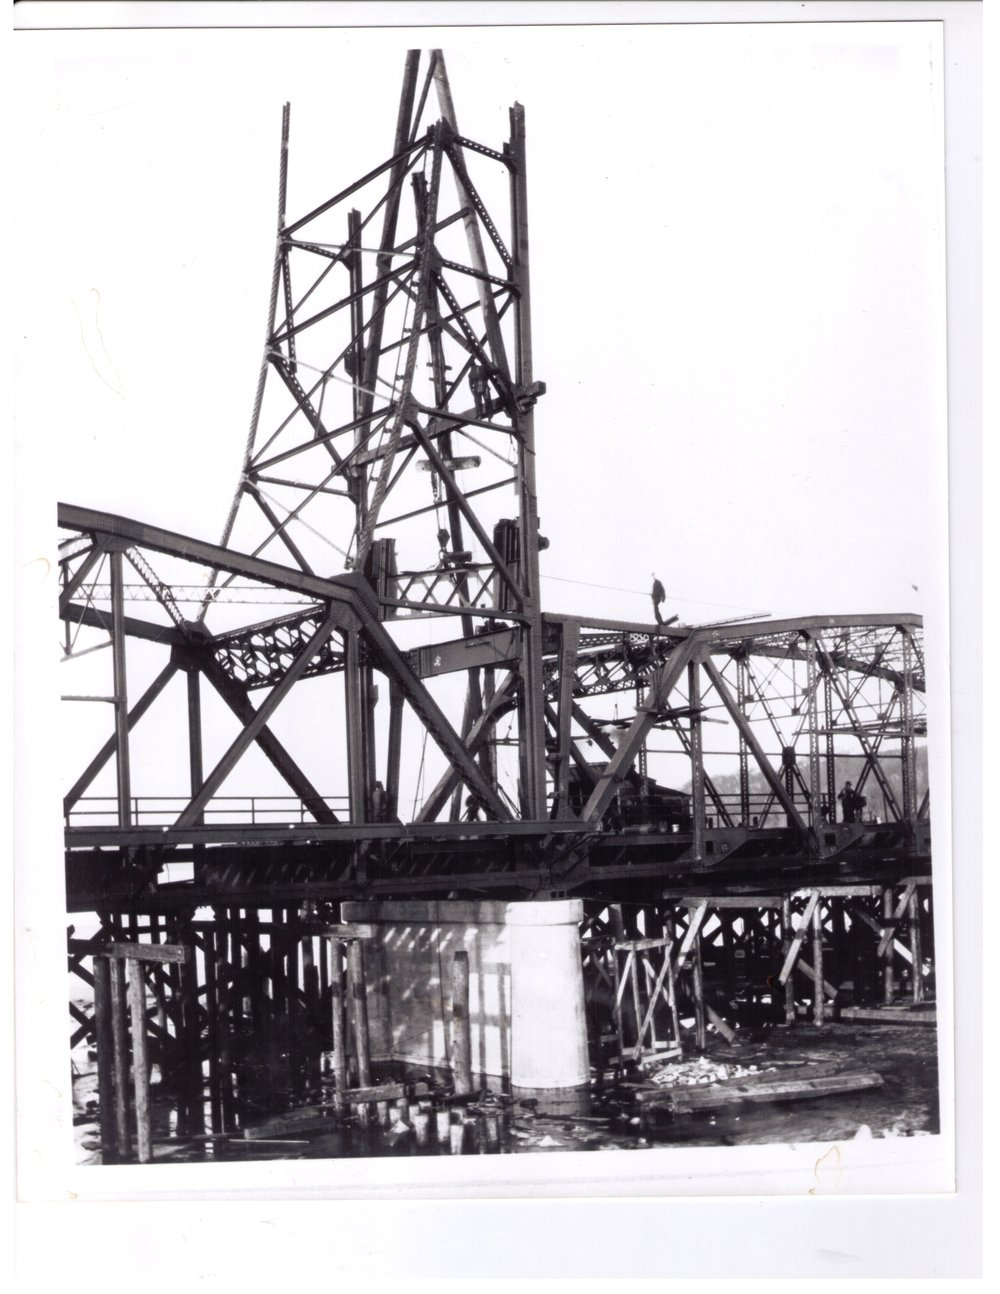 Lift Bridge Under Construction in 1931.  Photo credit, Mr. John Runk, courtesy of Stillwater Public Library. CLICK THIS TEXT TO SEE GOOGLE MAPS 360 STREET VIEW AT THIS SAME LOCATION IN 2016.